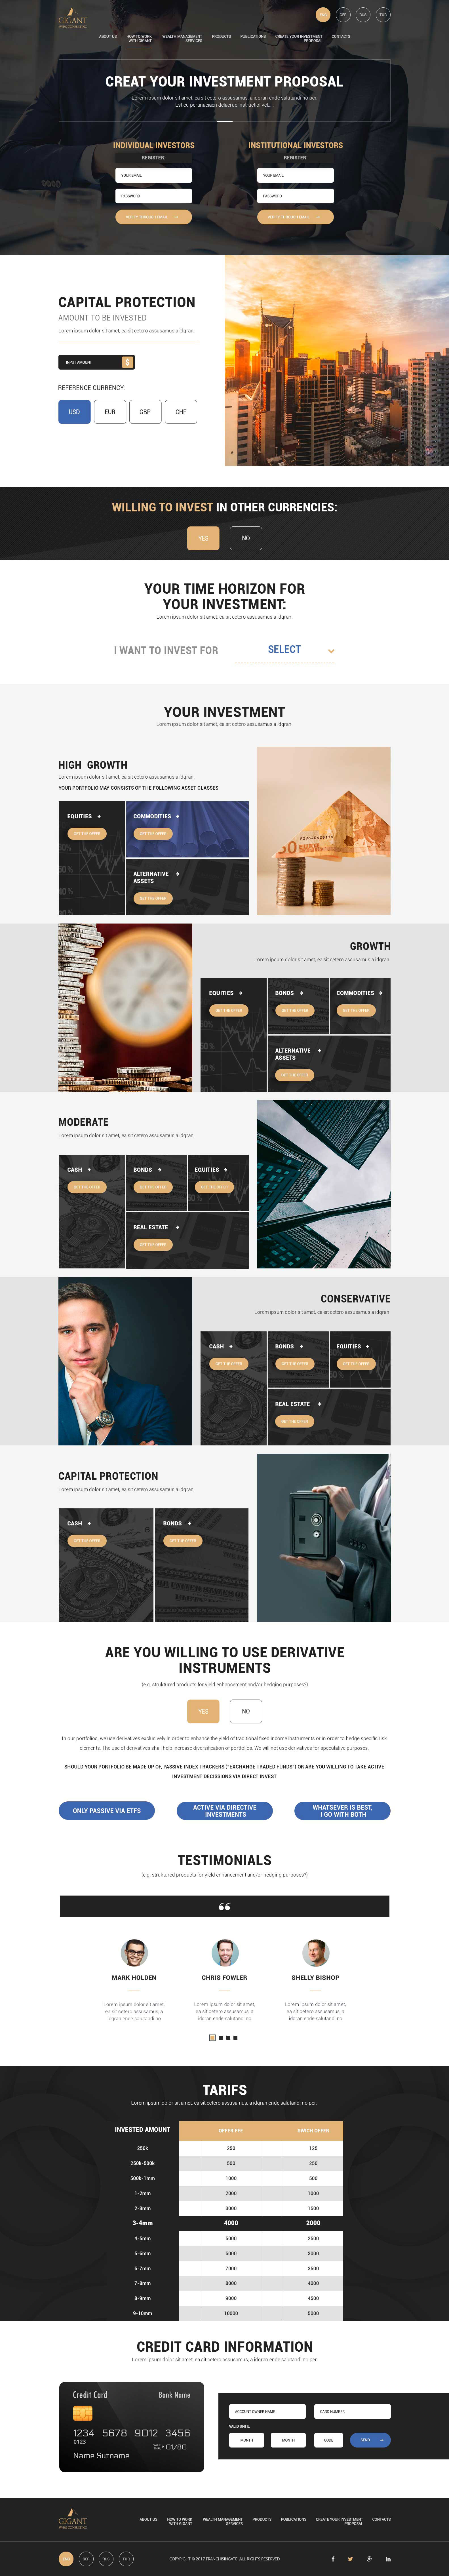 Gigant - Business Project - Web-Design - Merehead Development